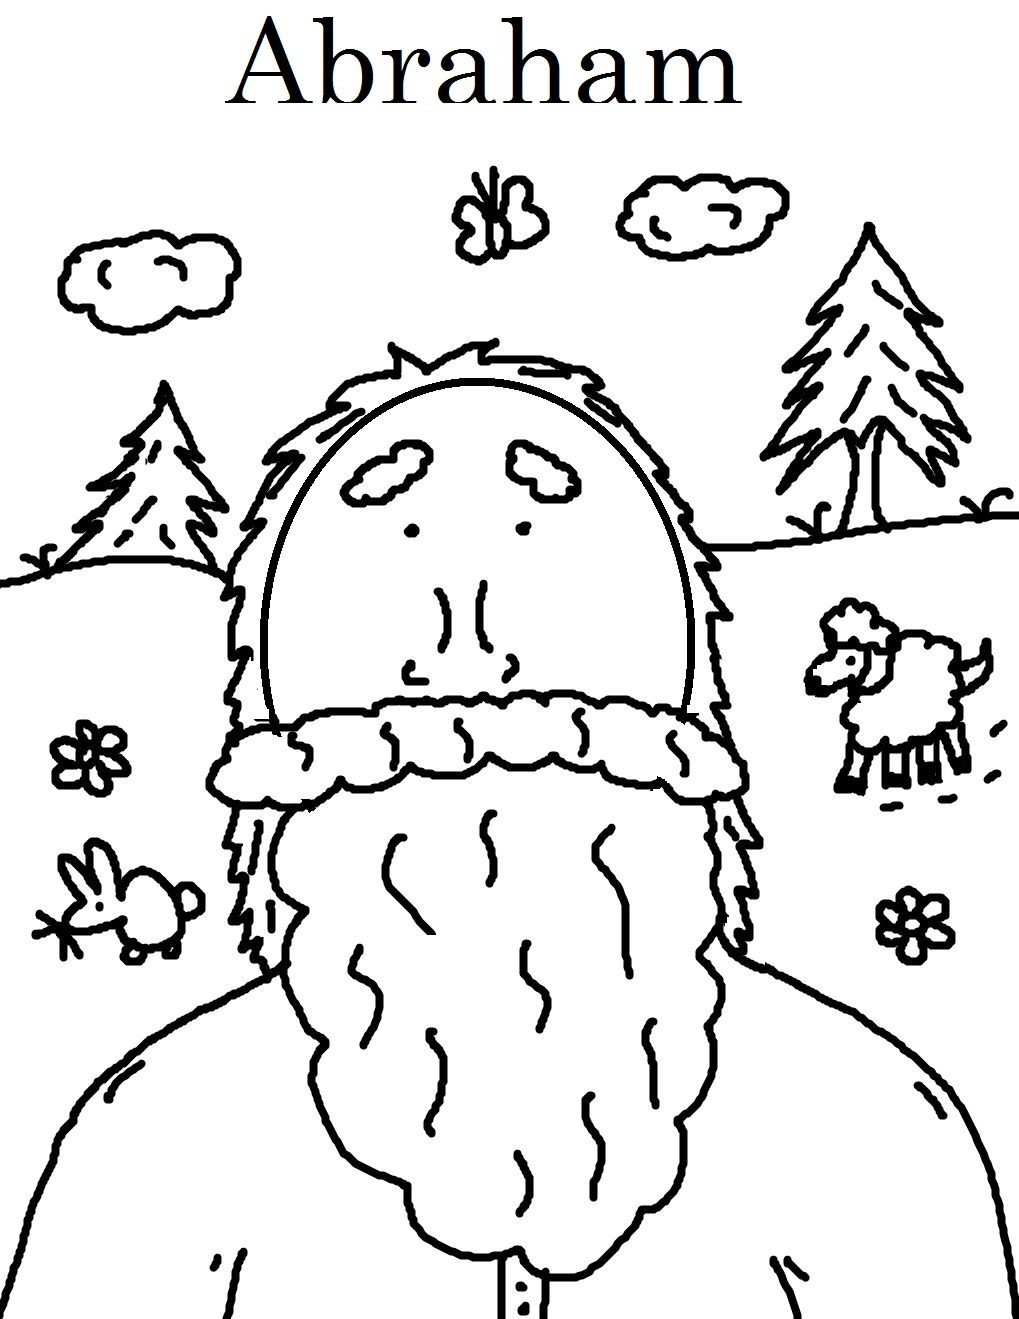 PDF Colouring Page Of Abraham At Churchhousecollection Resources Abraham20Coloring20Pages